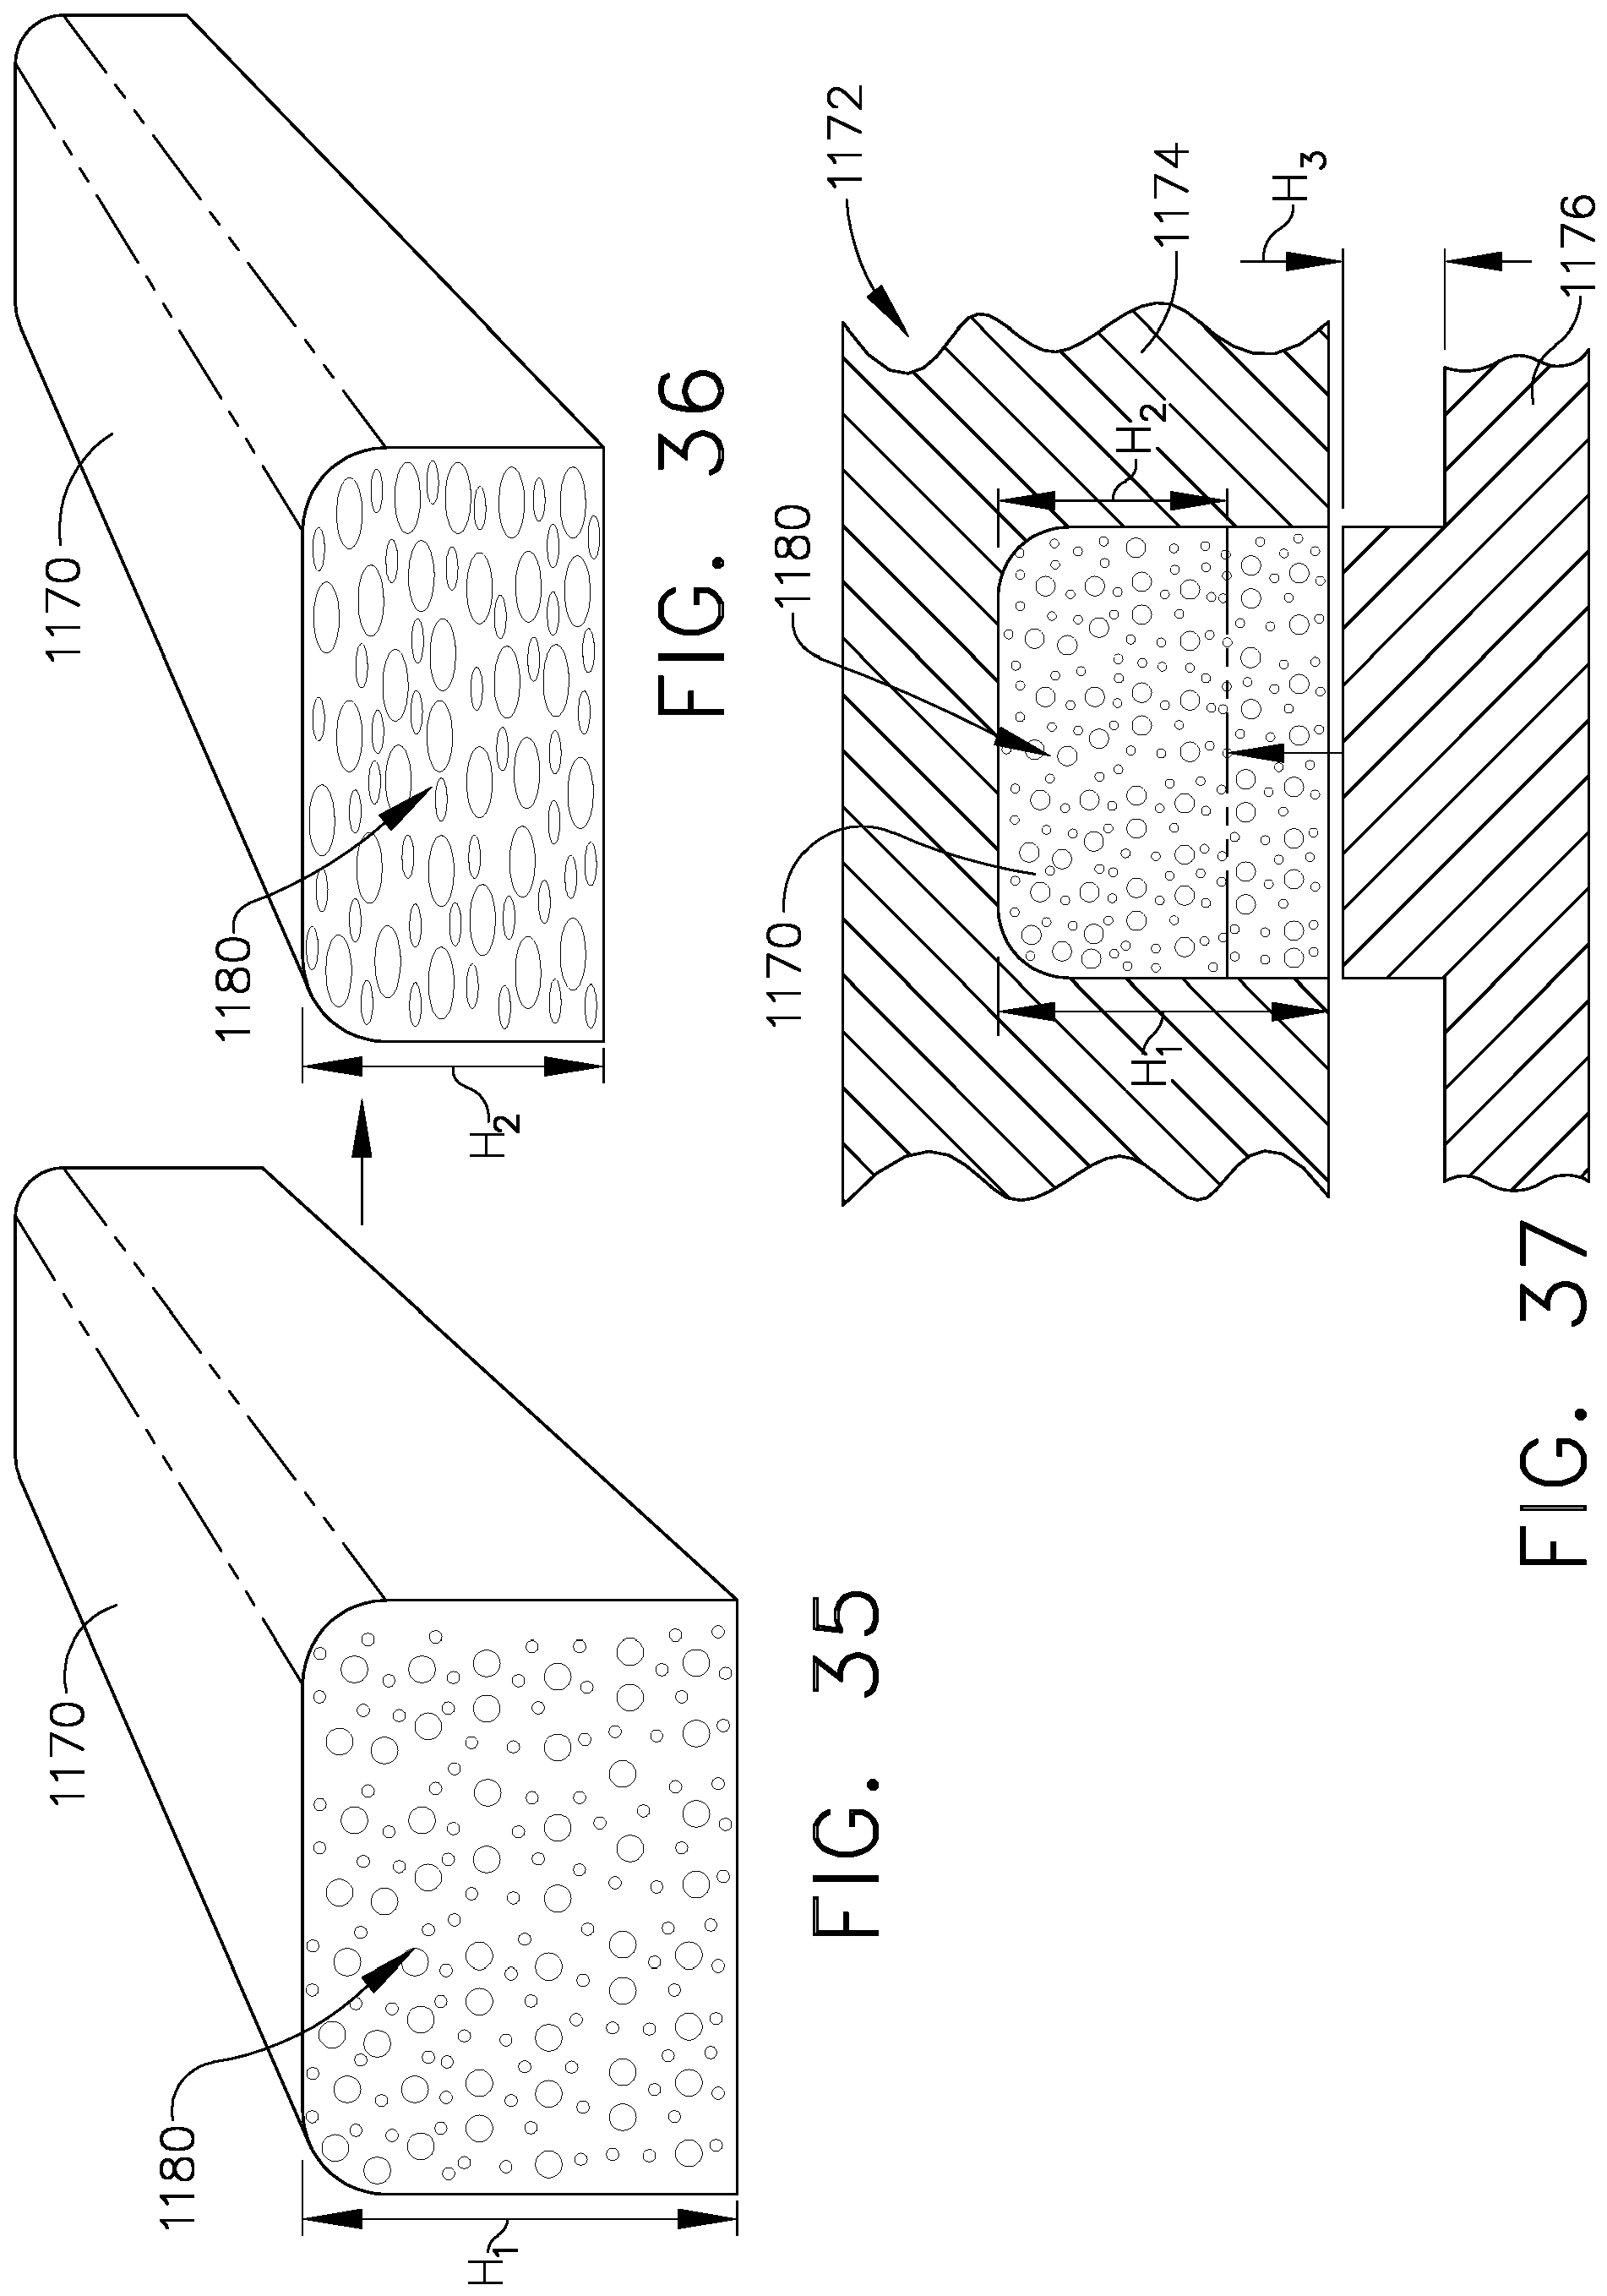 ep2910198b1 methods for altering implantable layers for use with Brake Bar ep2910198b1 methods for altering implantable layers for use with surgical fastening instruments patents